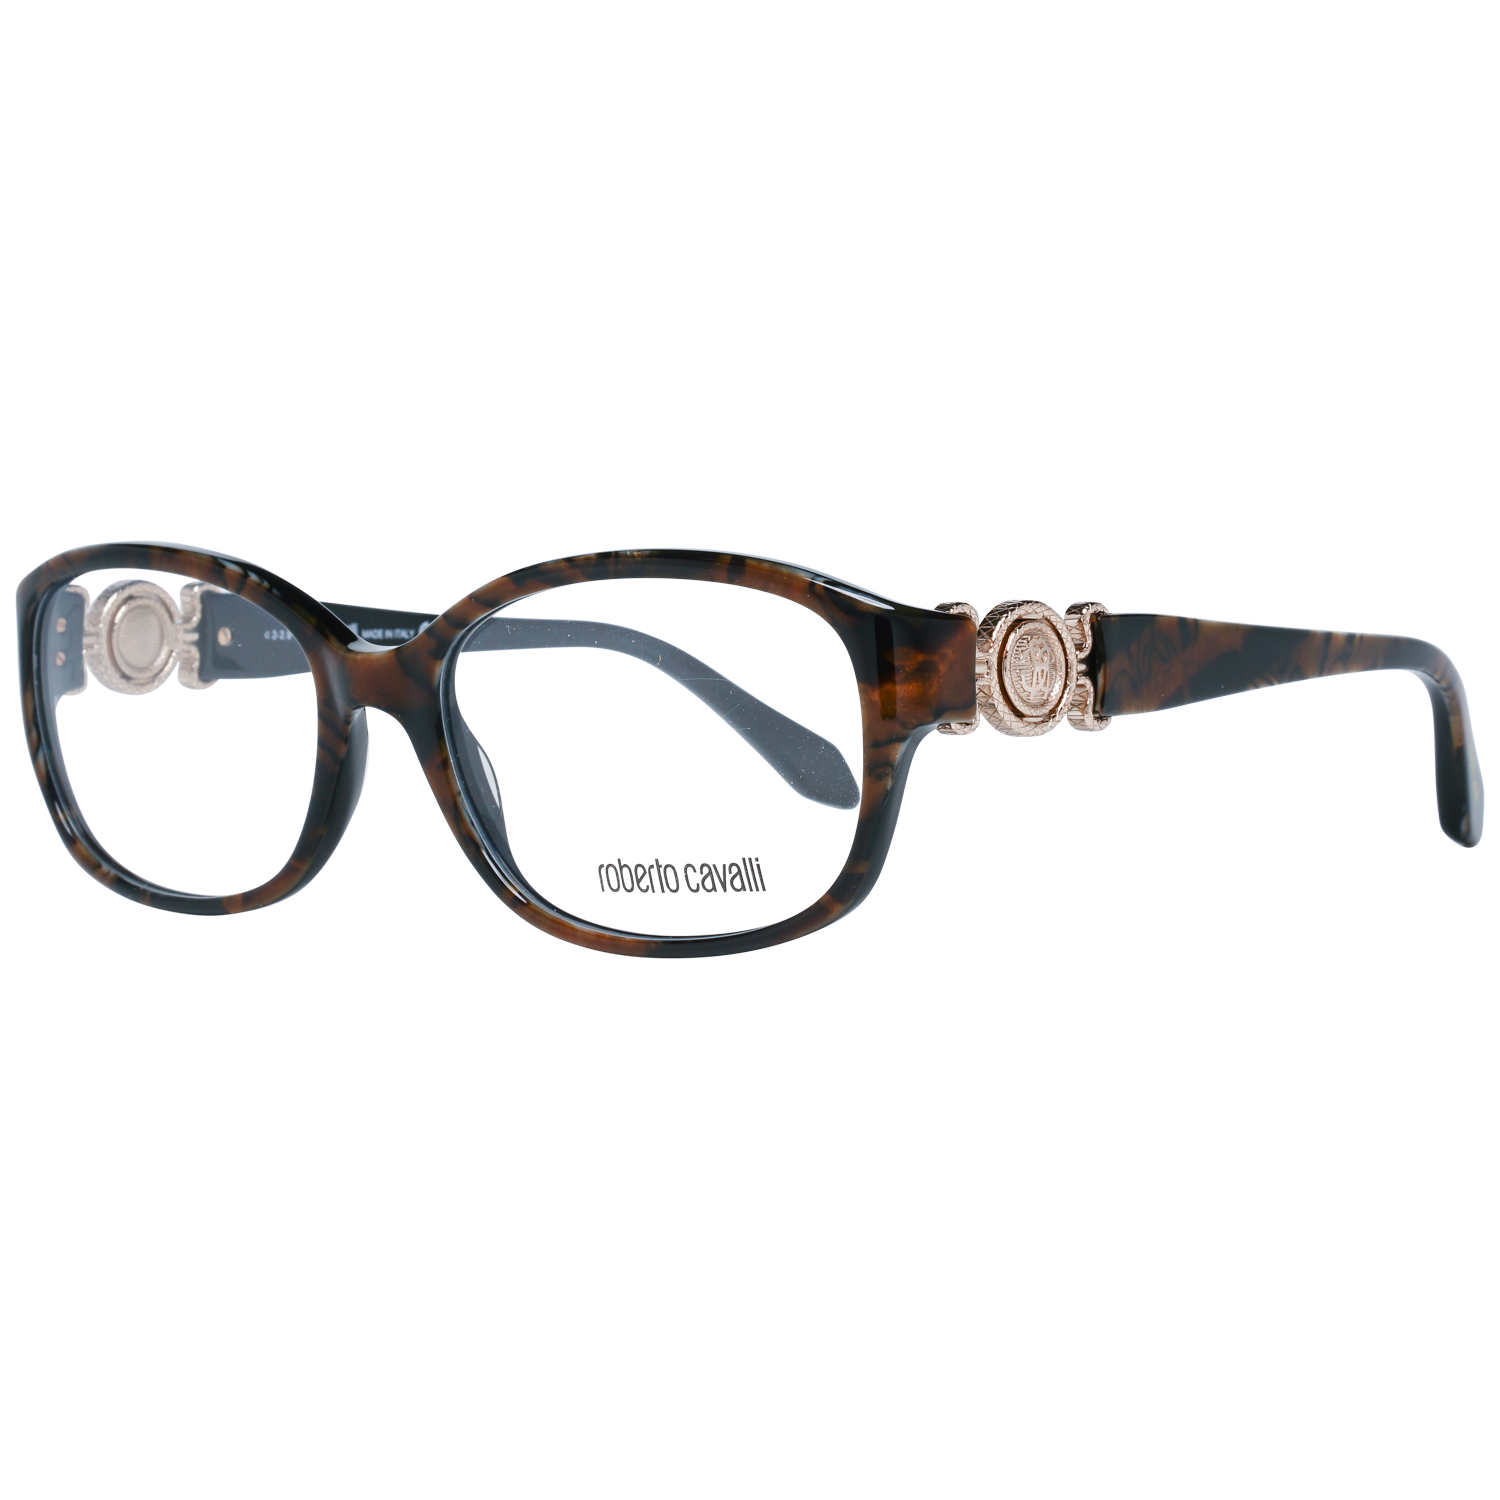 Roberto Cavalli Optical Frame RC0713 056 54 Women Brown